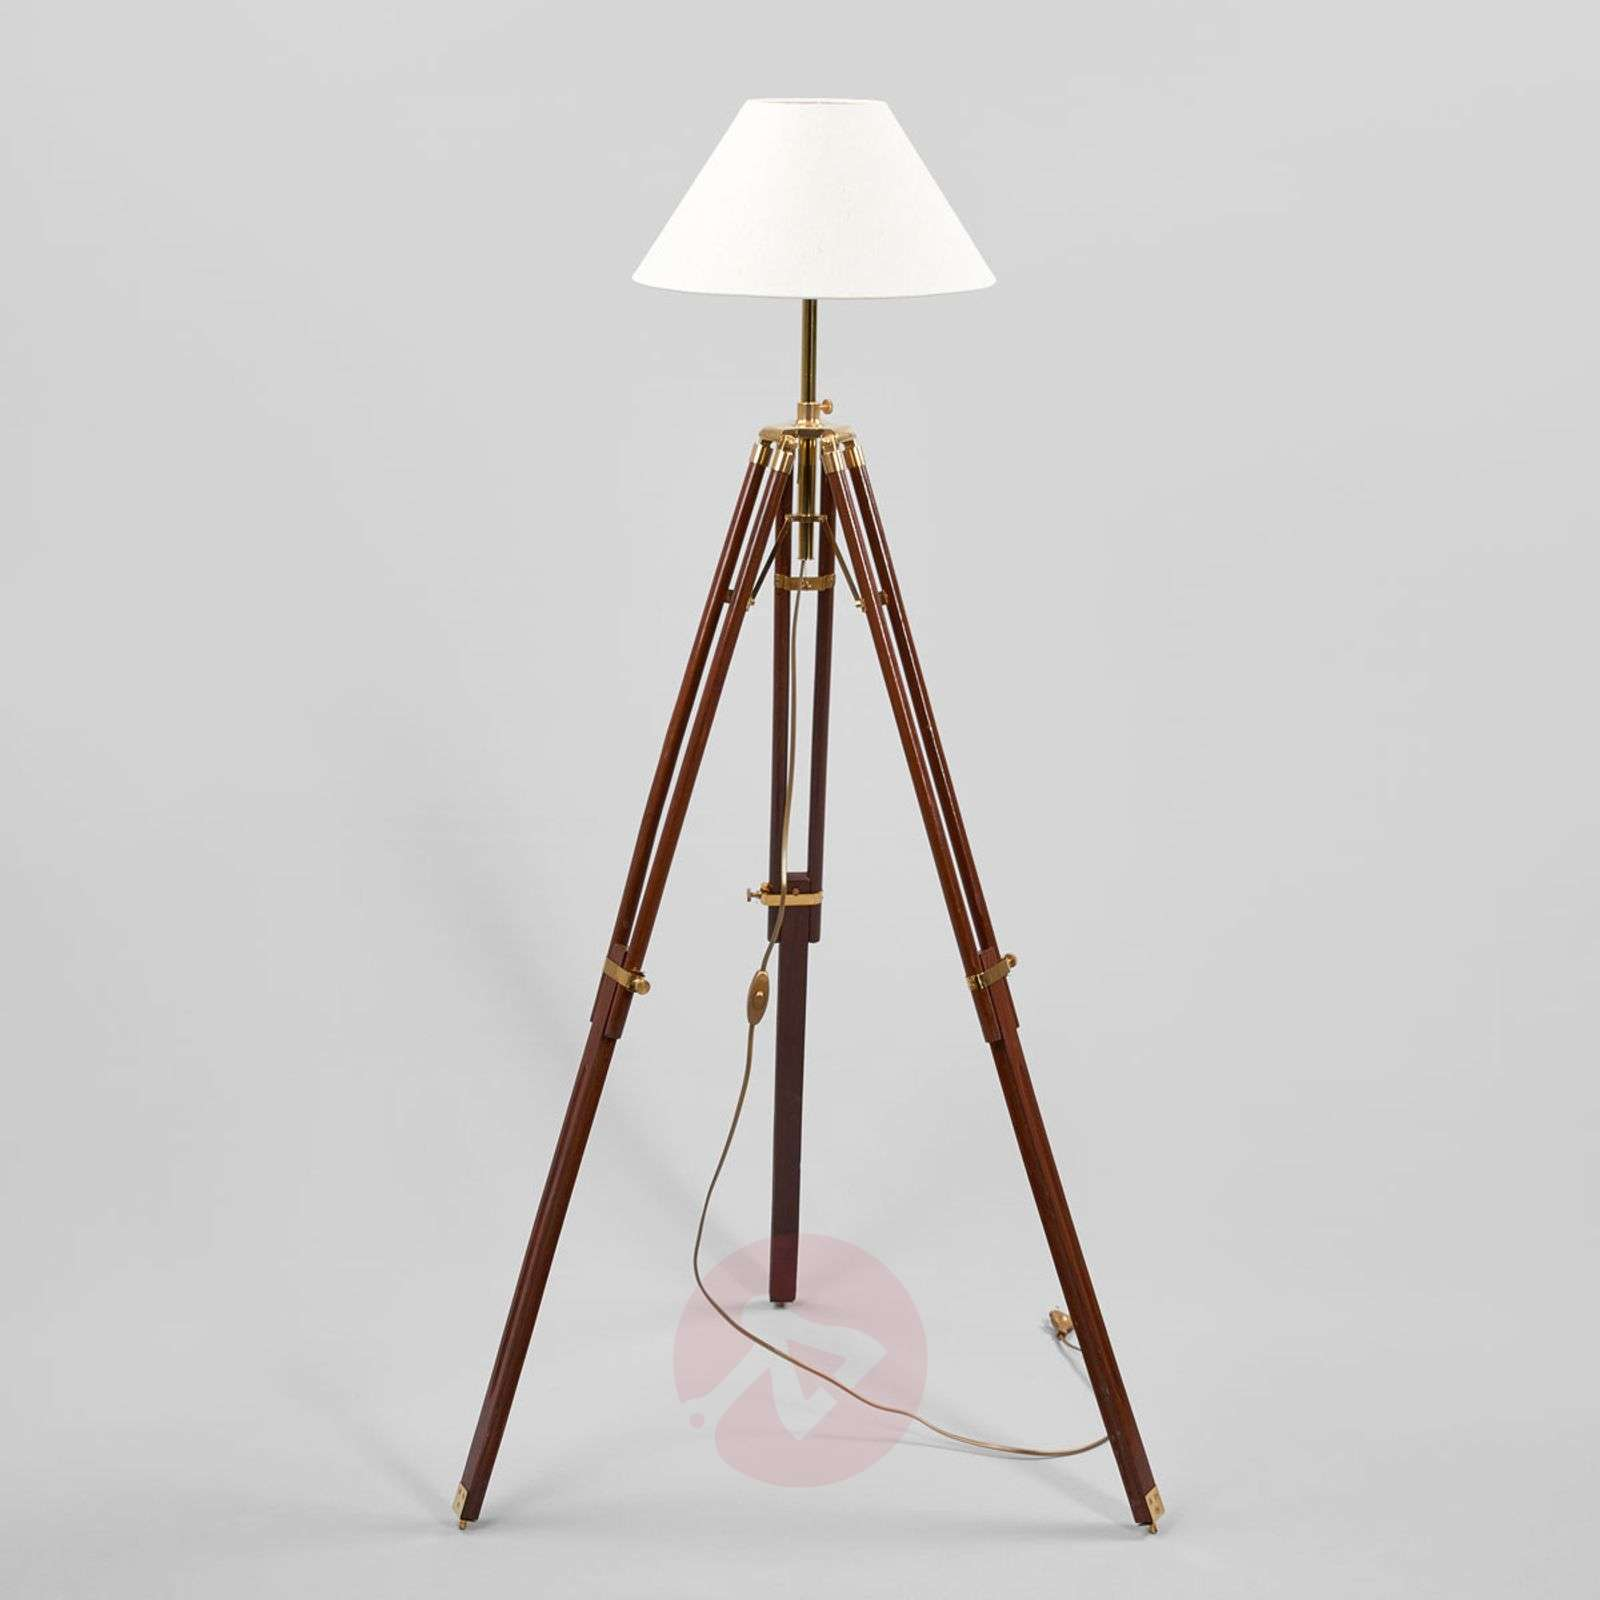 Magnificent floor lamp STATIV with white lampshade-8553010-01